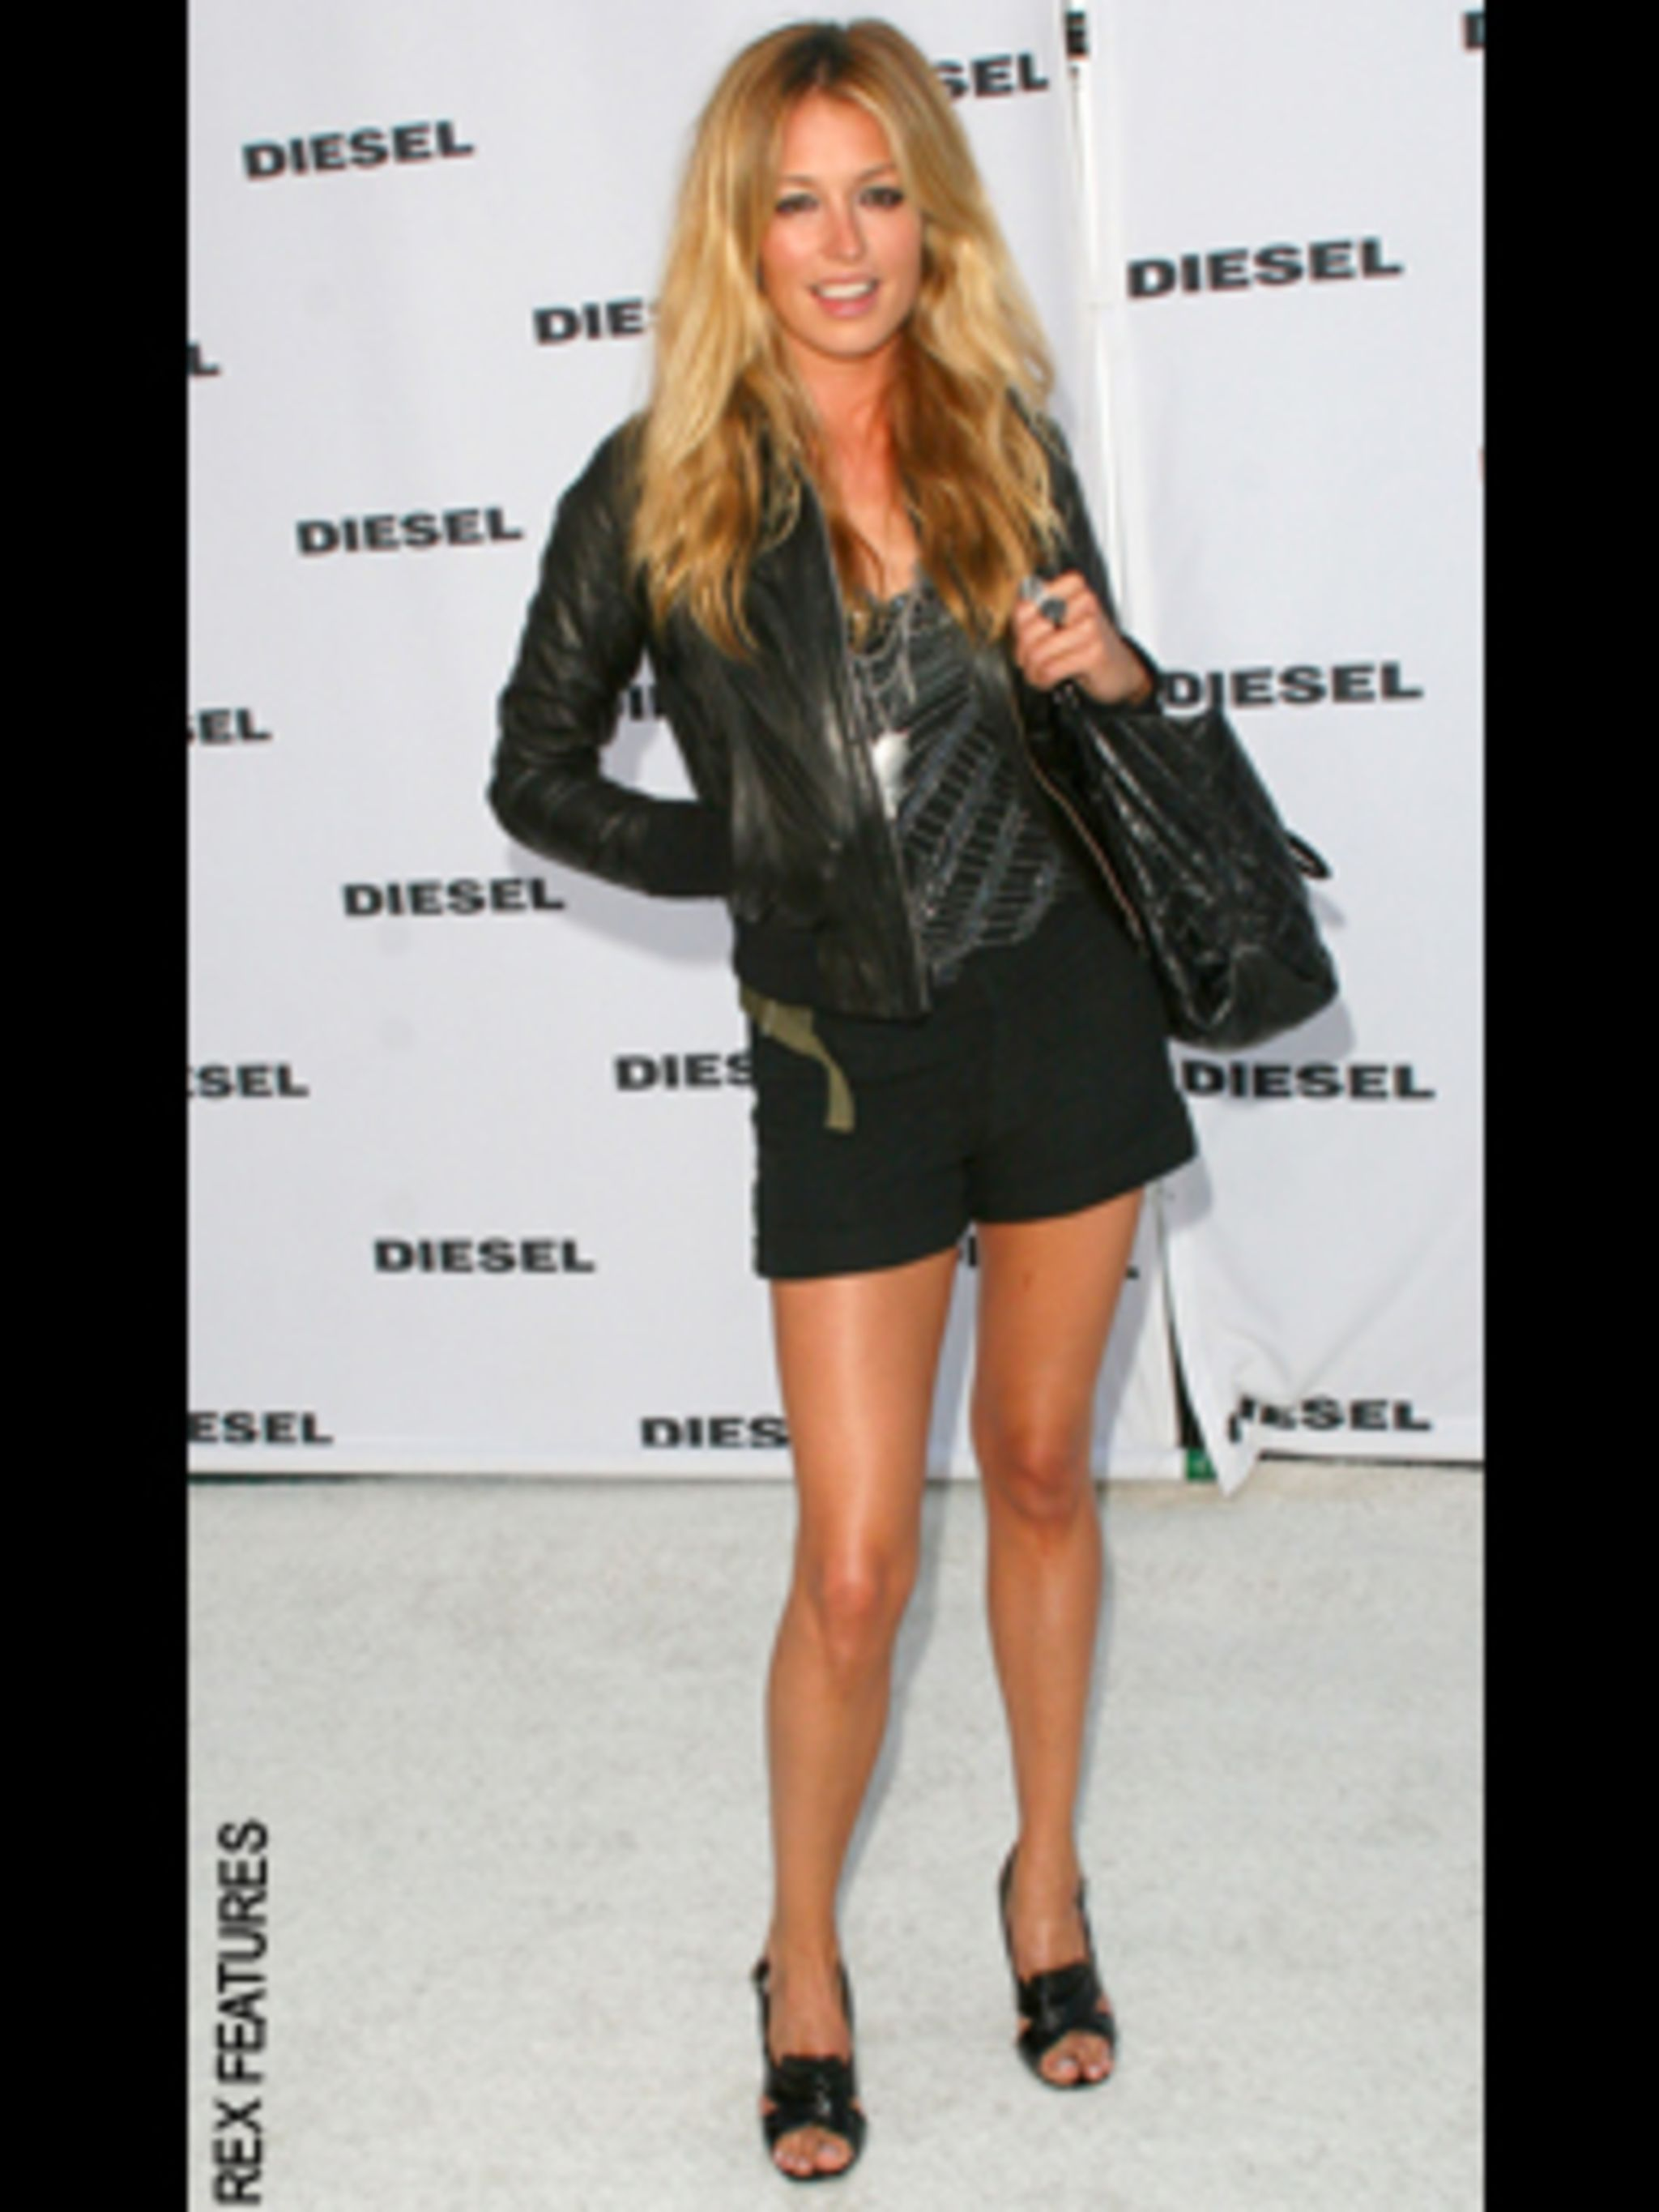 <p>Cat perfects the look in Diesel shorts and perfectly tanned legs</p>